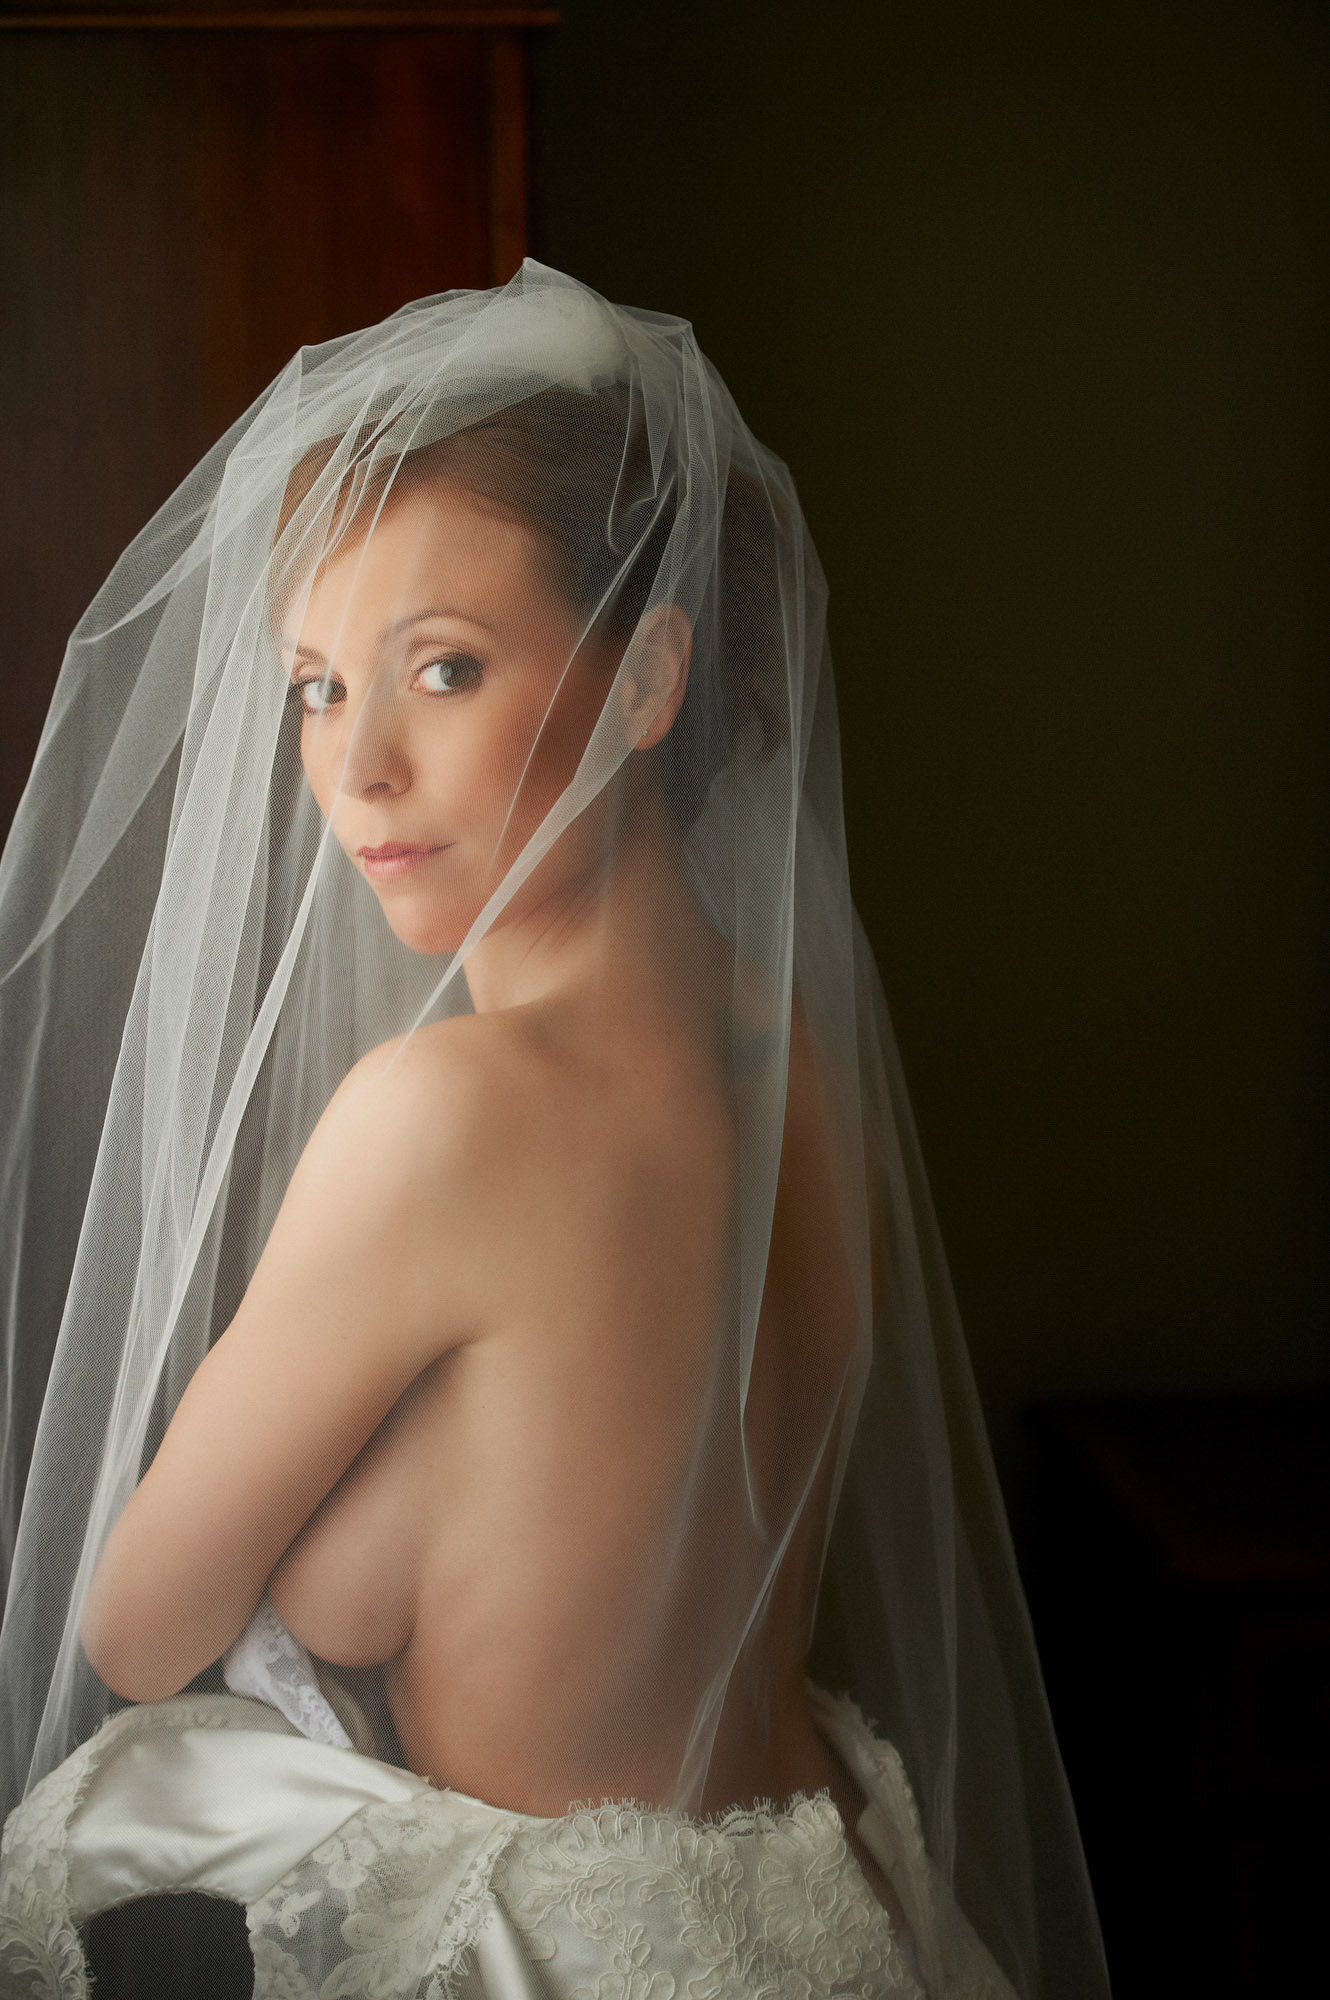 Bridal boudoir getting ready - photo by Jerry Ghionis